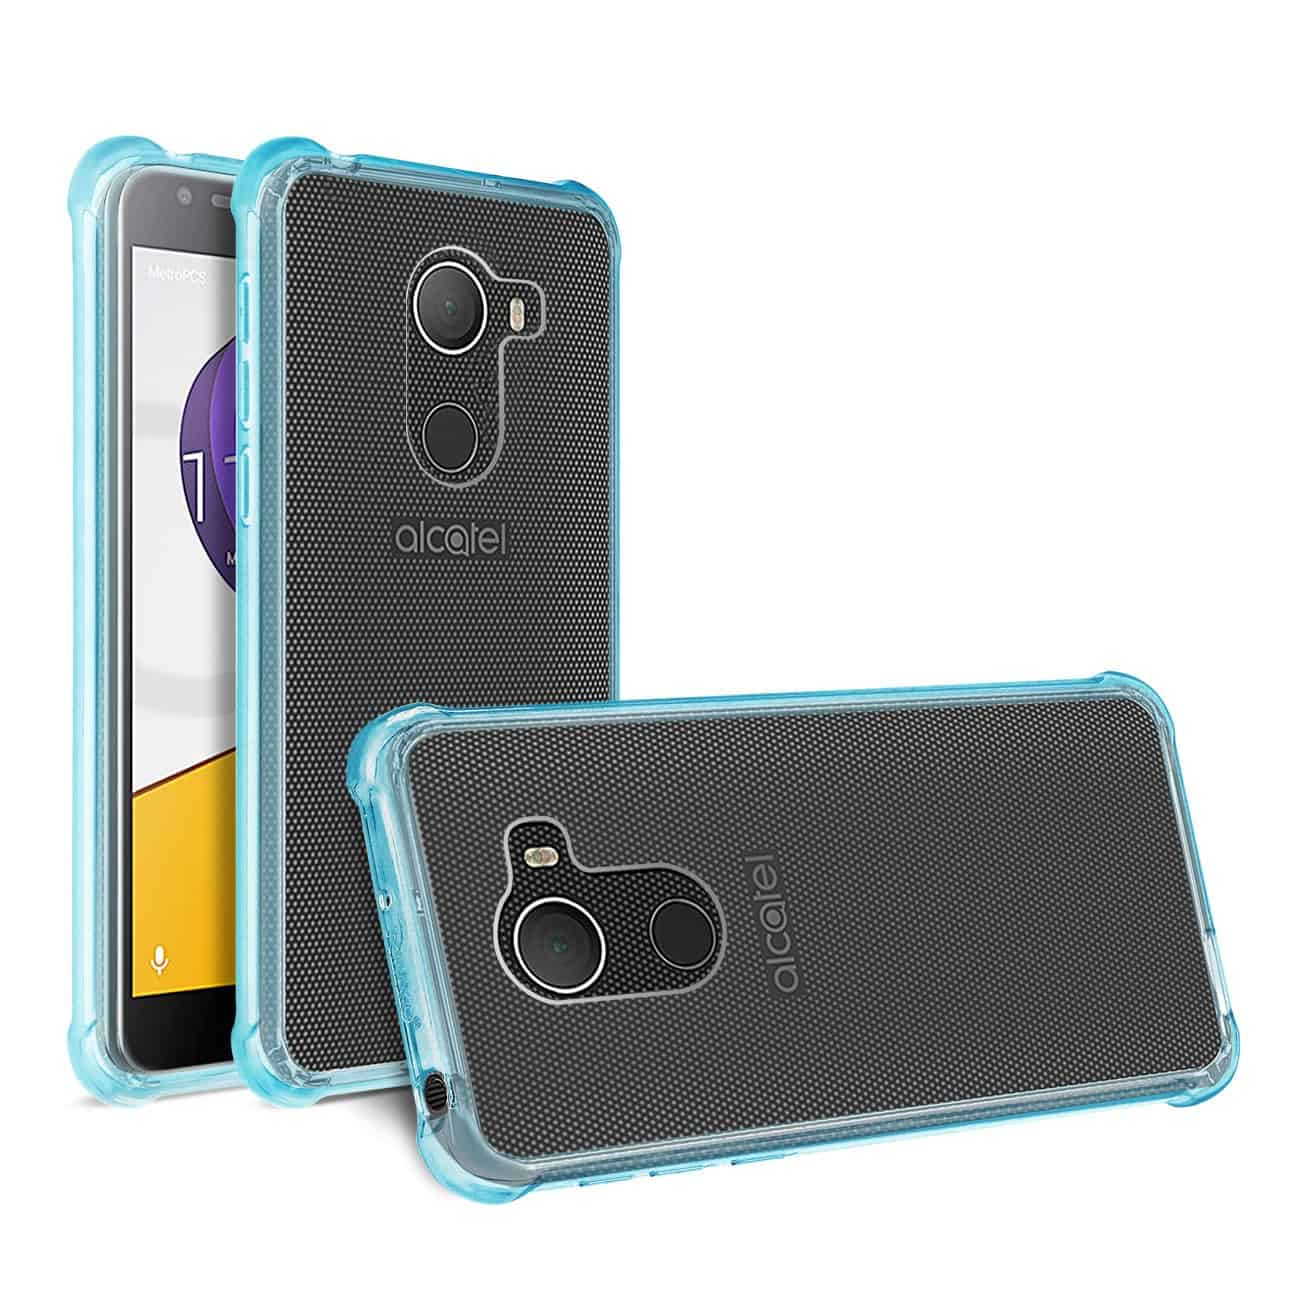 ALCATEL WALTERS CLEAR BUMPER CASE WITH AIR CUSHION PROTECTION IN CLEAR NAVY